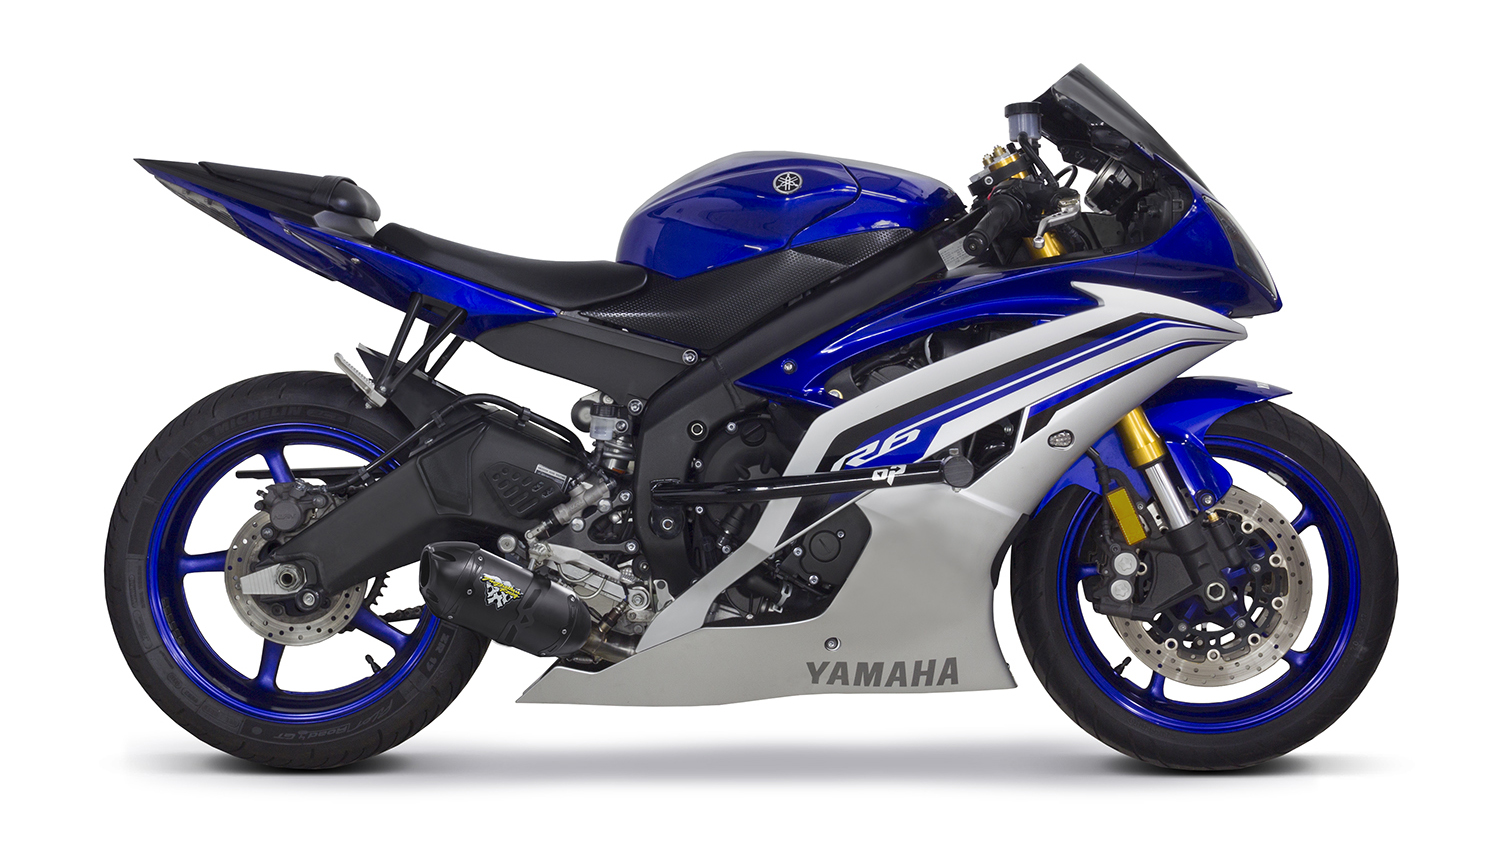 Two Brothers Racing - Yamaha R6 - The Storm Series Mufflers